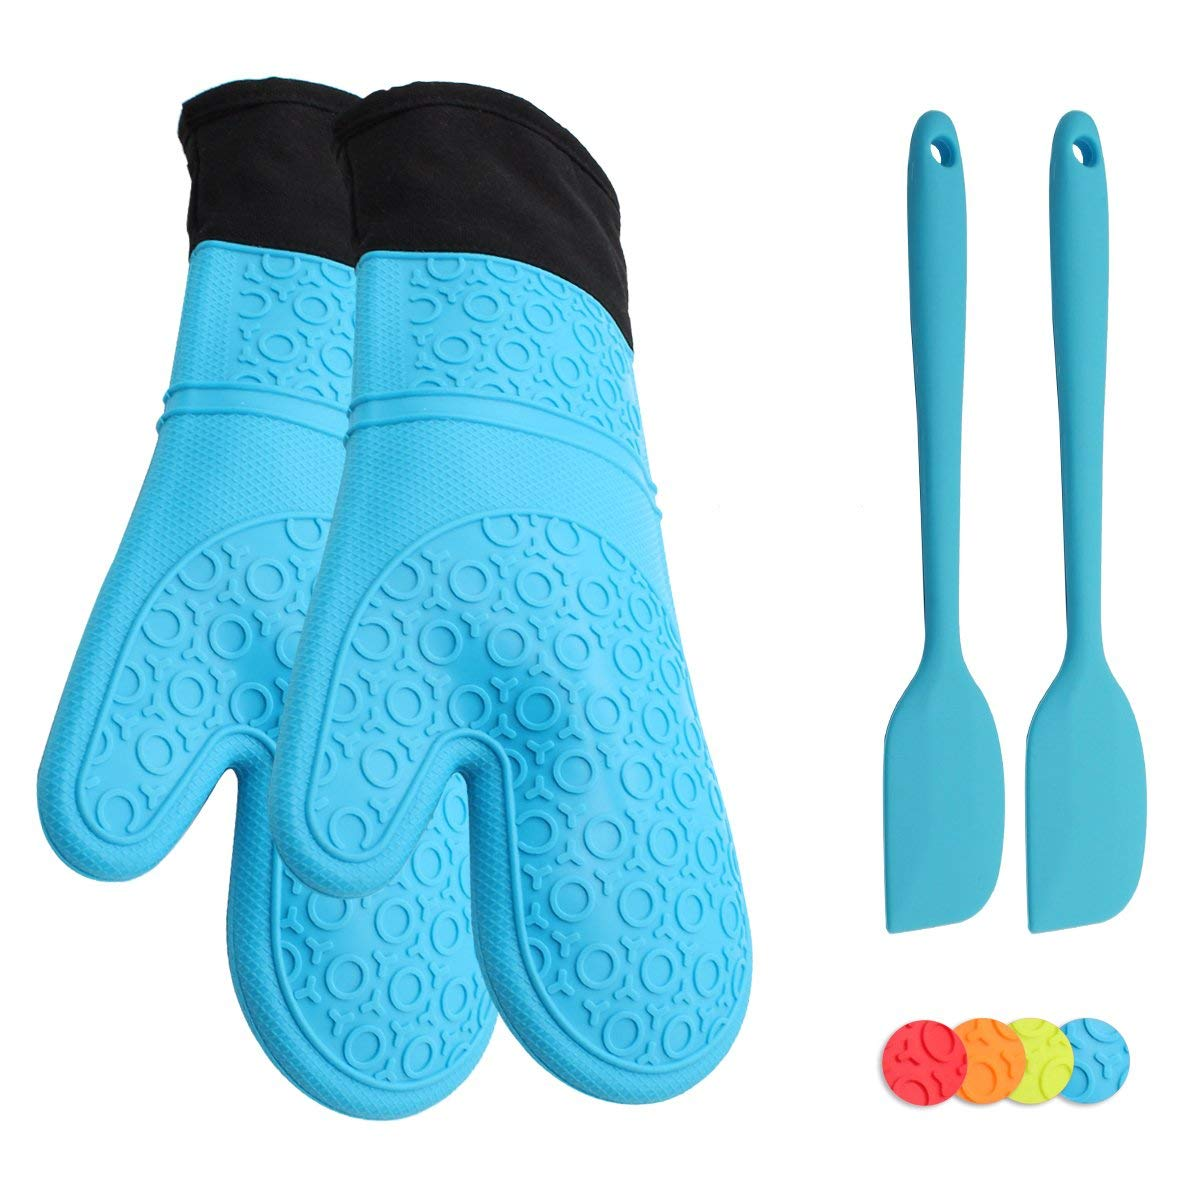 ATOZEDO Durable Silicone Oven Mitts, Extra Long Heat Resistant Oven Glove with Quilted Cotton Liner - Plus Silicone Baking Spatula(2pcs) in Food Grade Silicone Material Blue Set